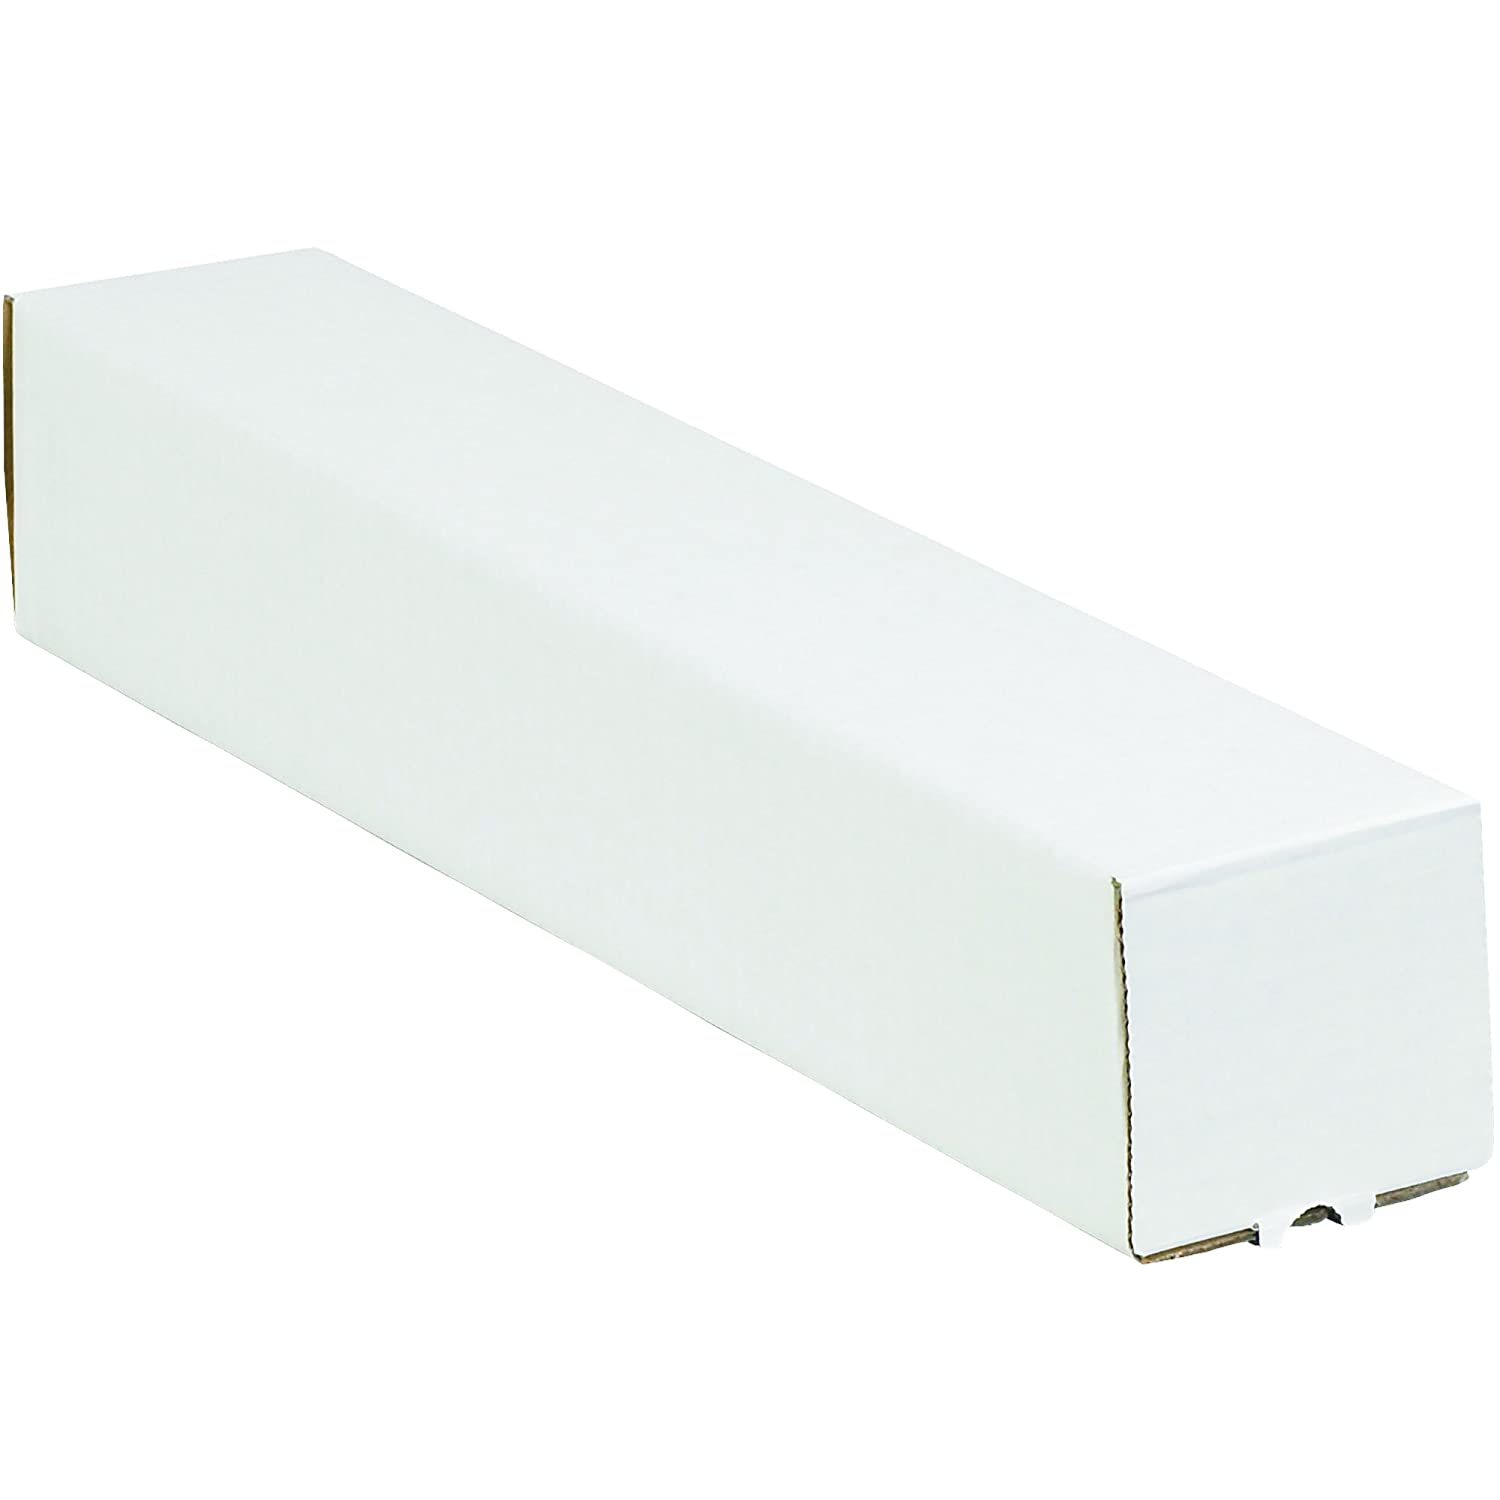 Ship Now Supply SNM3318 Square Mailing Tubes, 3